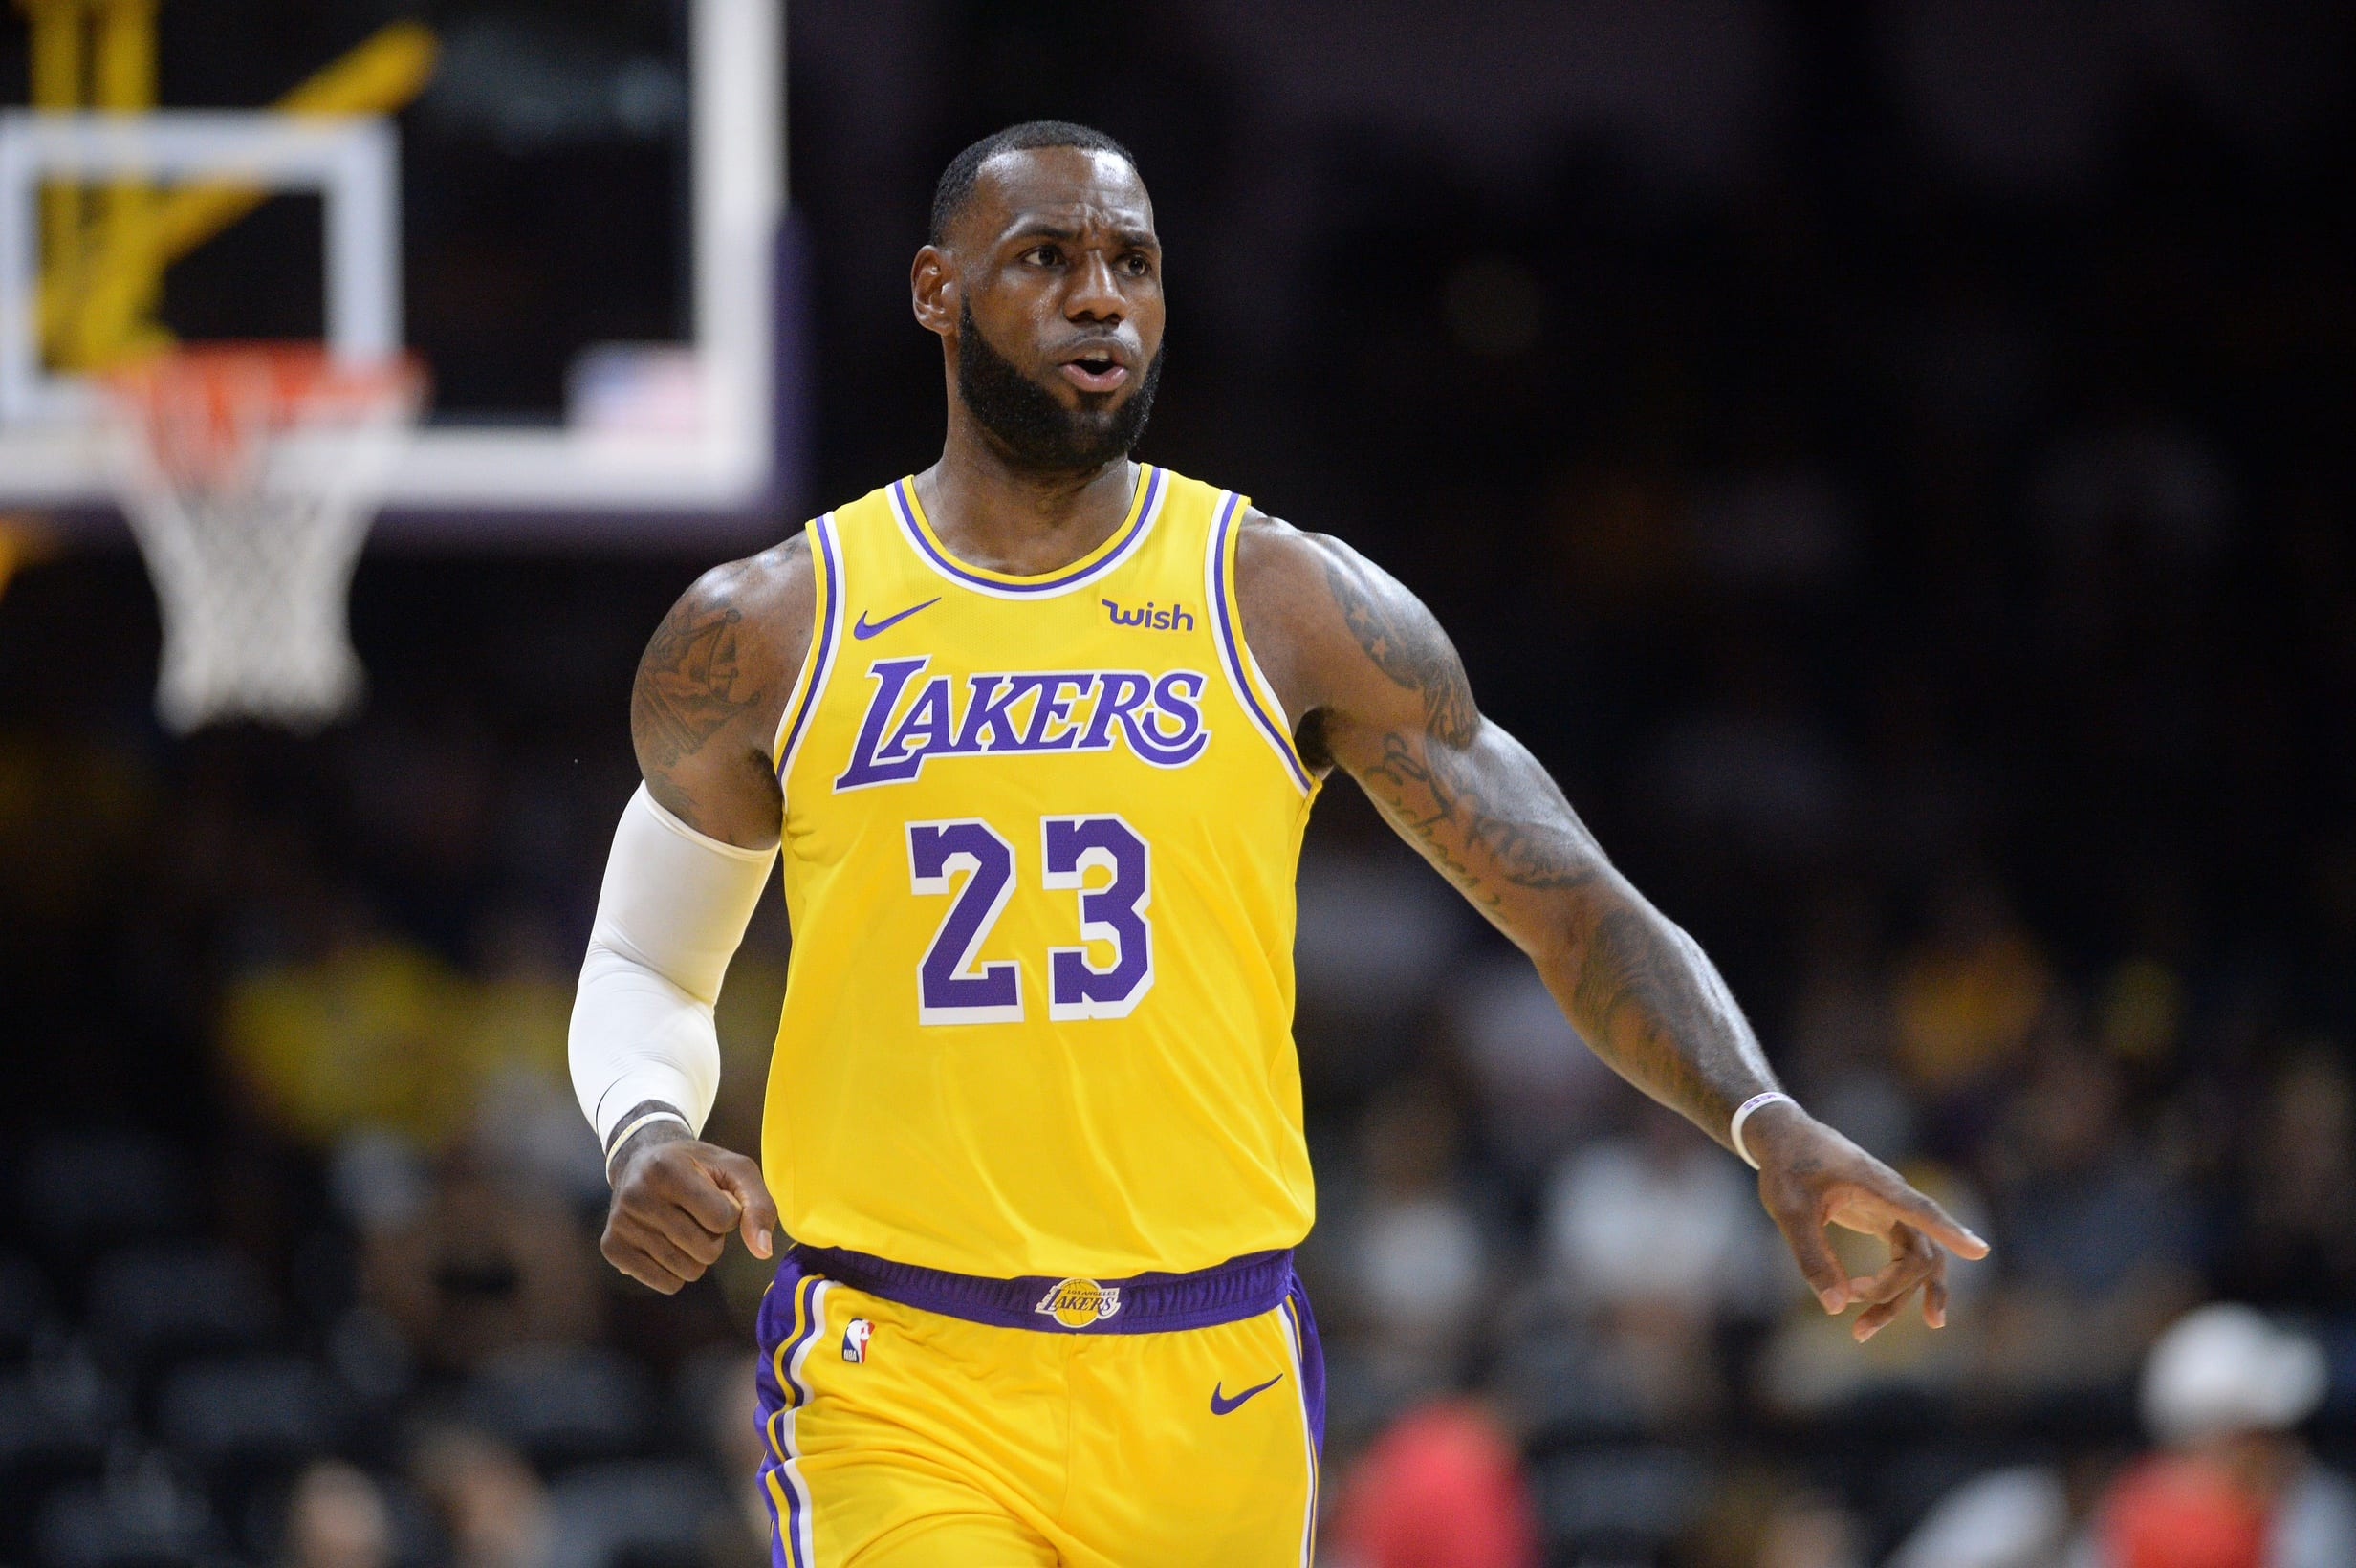 LeBron James Makes Debut, But Lakers Fall To Nuggets In ...